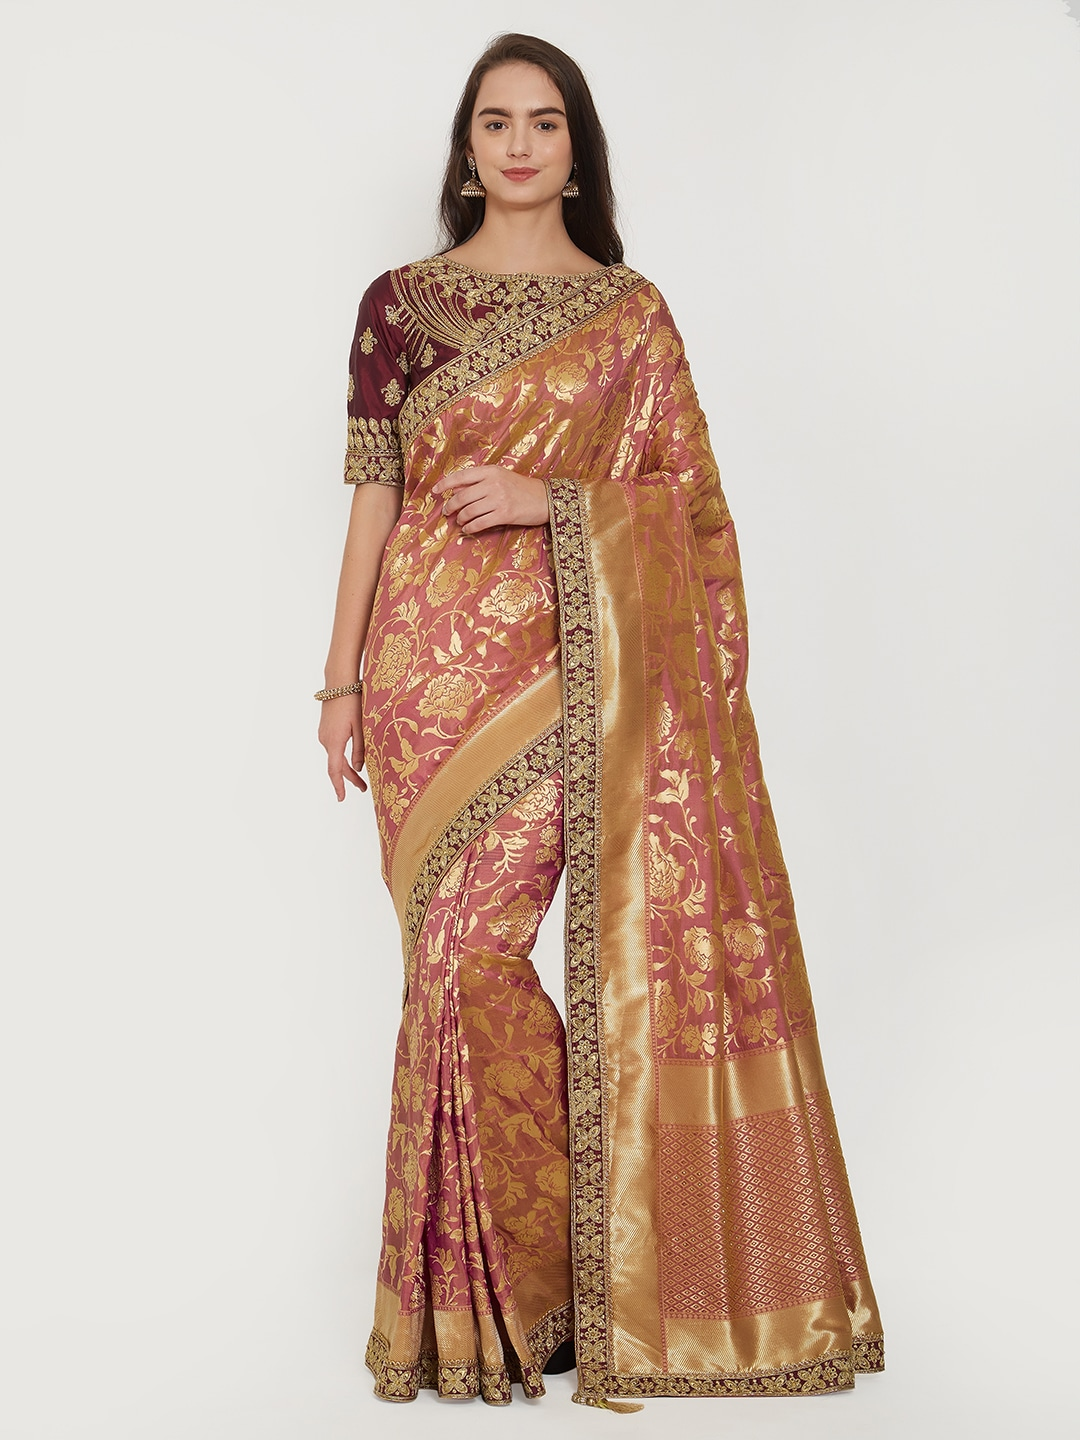 b9b13f0af7 Women Sarees Kajal - Buy Women Sarees Kajal online in India